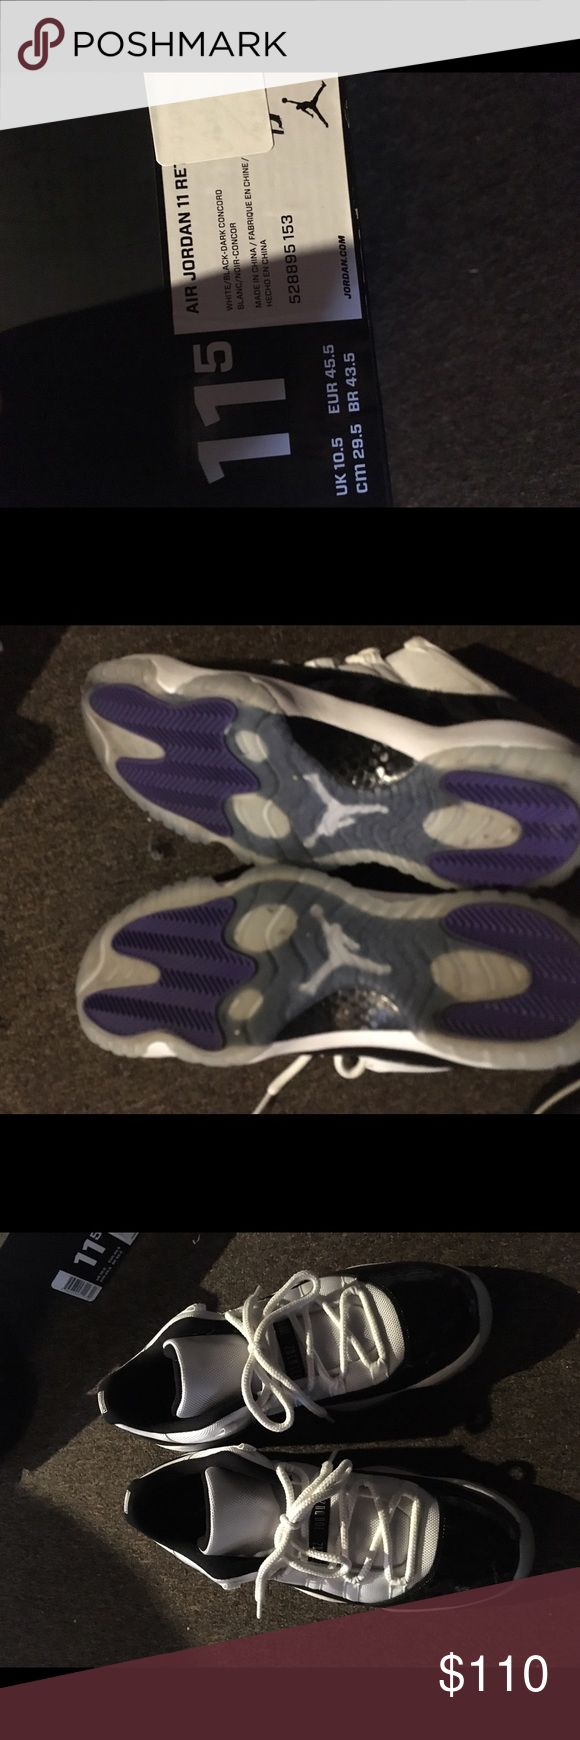 Jordan 11 Low Concords ONLY WORN ONCE, SIZE 11, ONLY THROUGH 🅿️🅿️ Jordan Shoes Sneakers